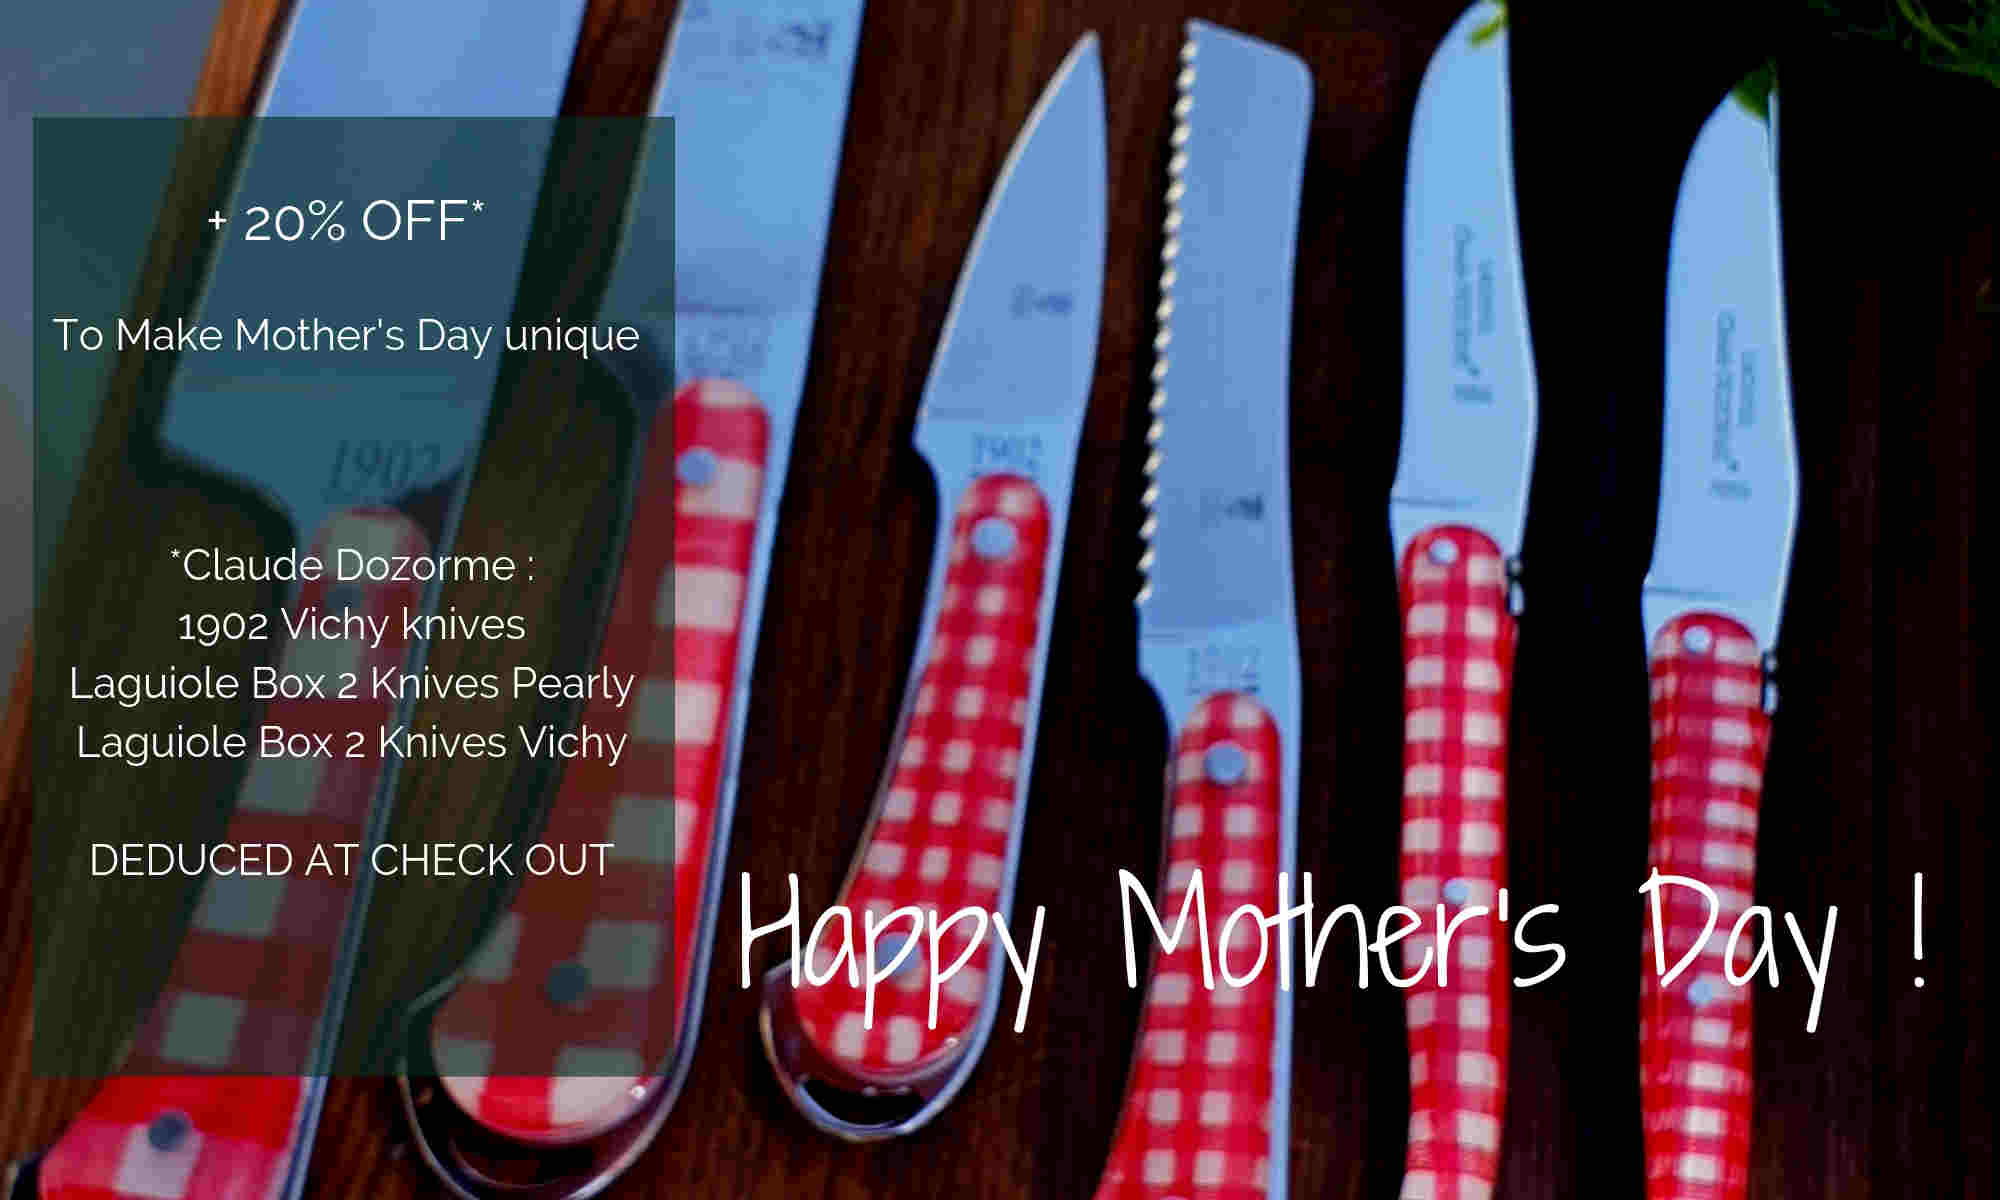 Happy Mother's Day promotion on Claude Dozorme Vichy knives